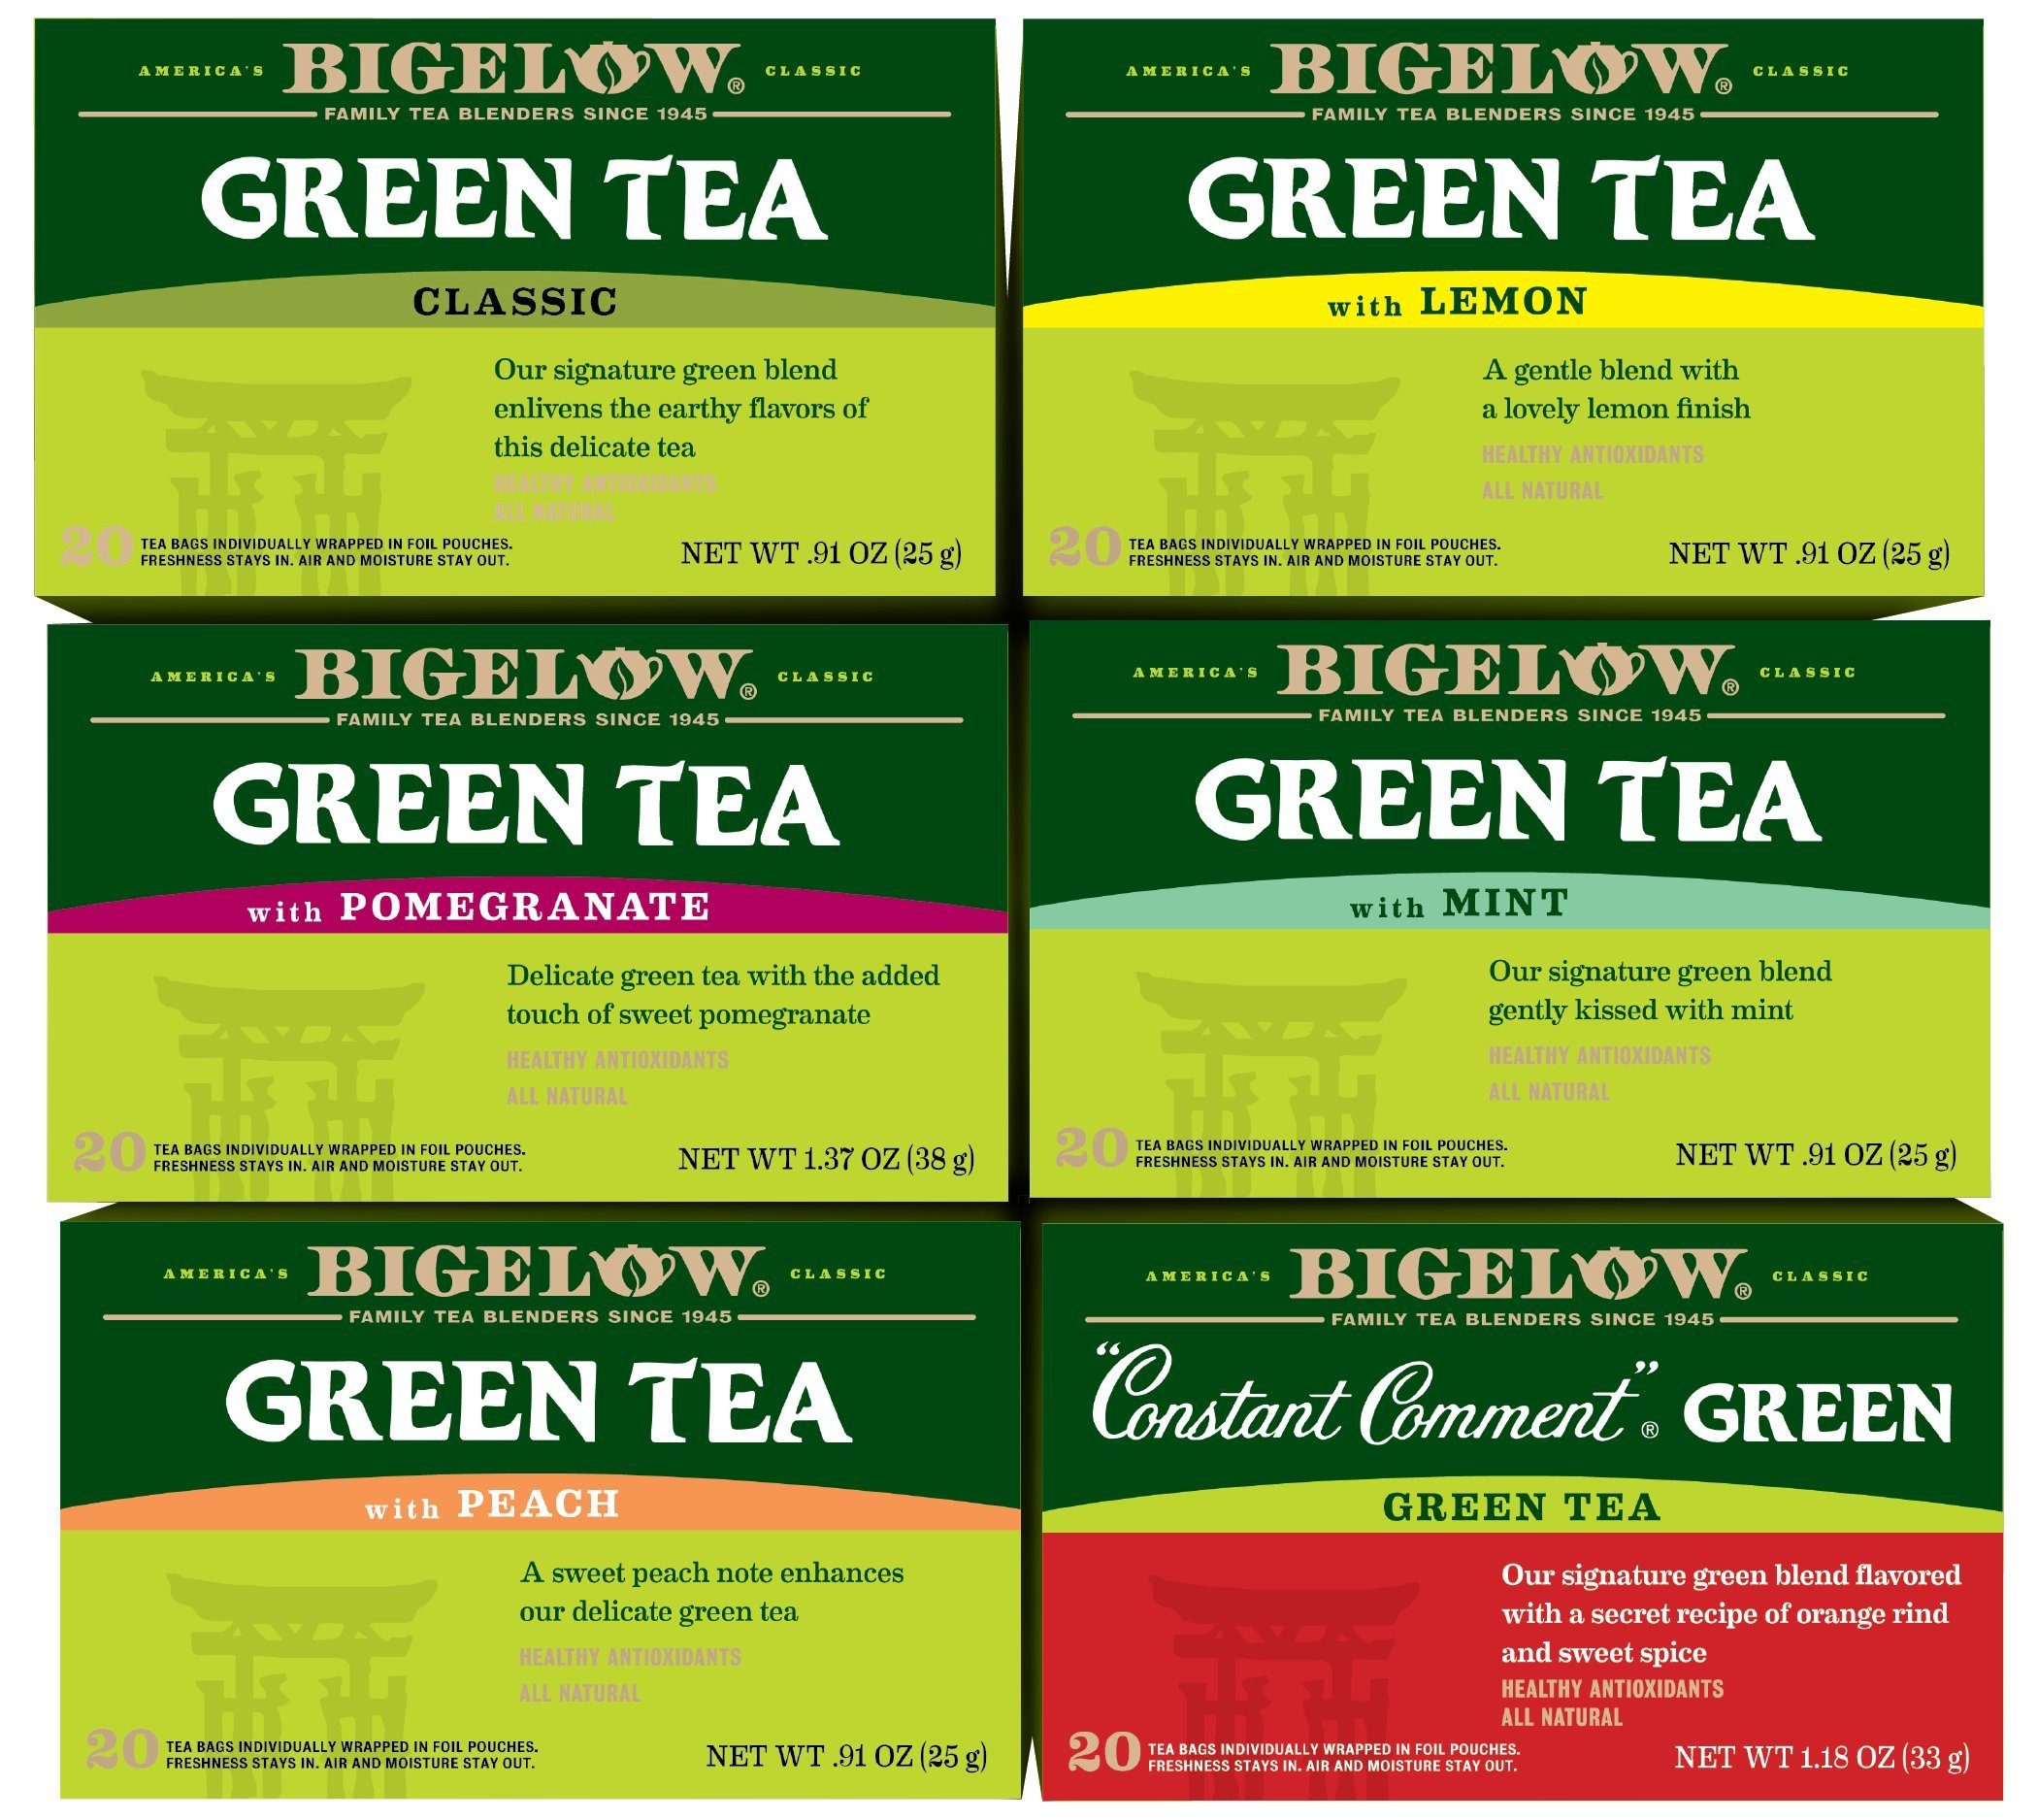 Bigelow Mixed Green Teas 20 Count (Pack of 6), 120 Tea Bags Total.  Caffeinated Individual Green Tea Bags, for Hot Tea or Iced Tea, Drink Plain or Sweetened with Honey or Sugar by Bigelow